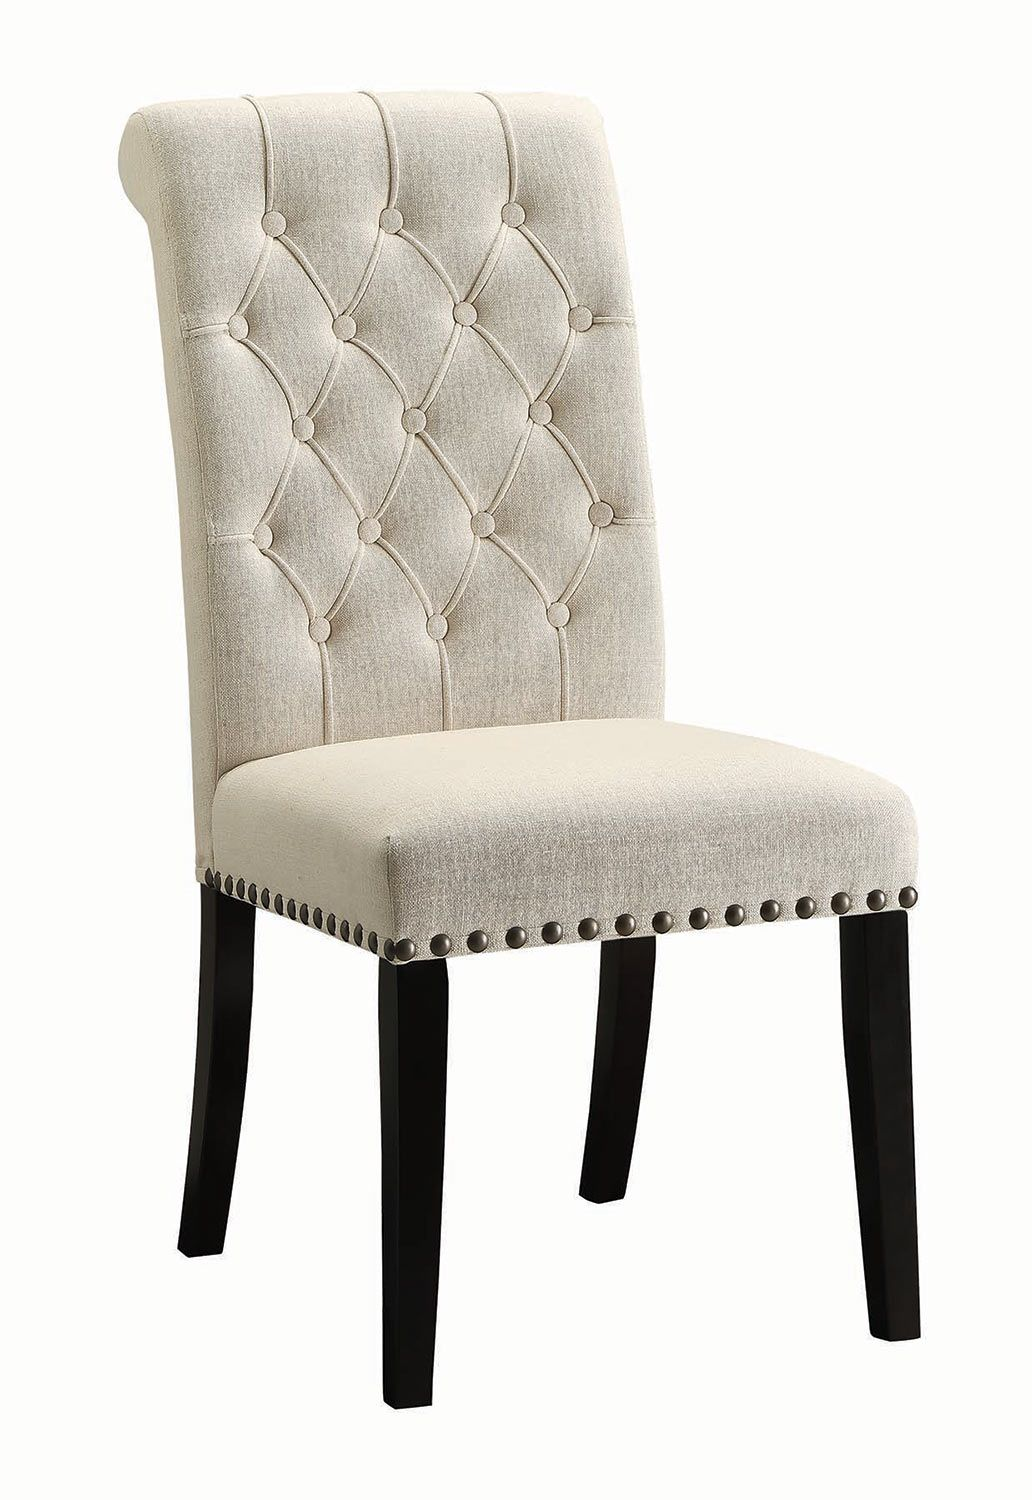 fabric dining chairs on coaster parkins parson side chair rustic espresso fabric dining chairs upholstered dining chairs cream upholstered dining chairs pinterest